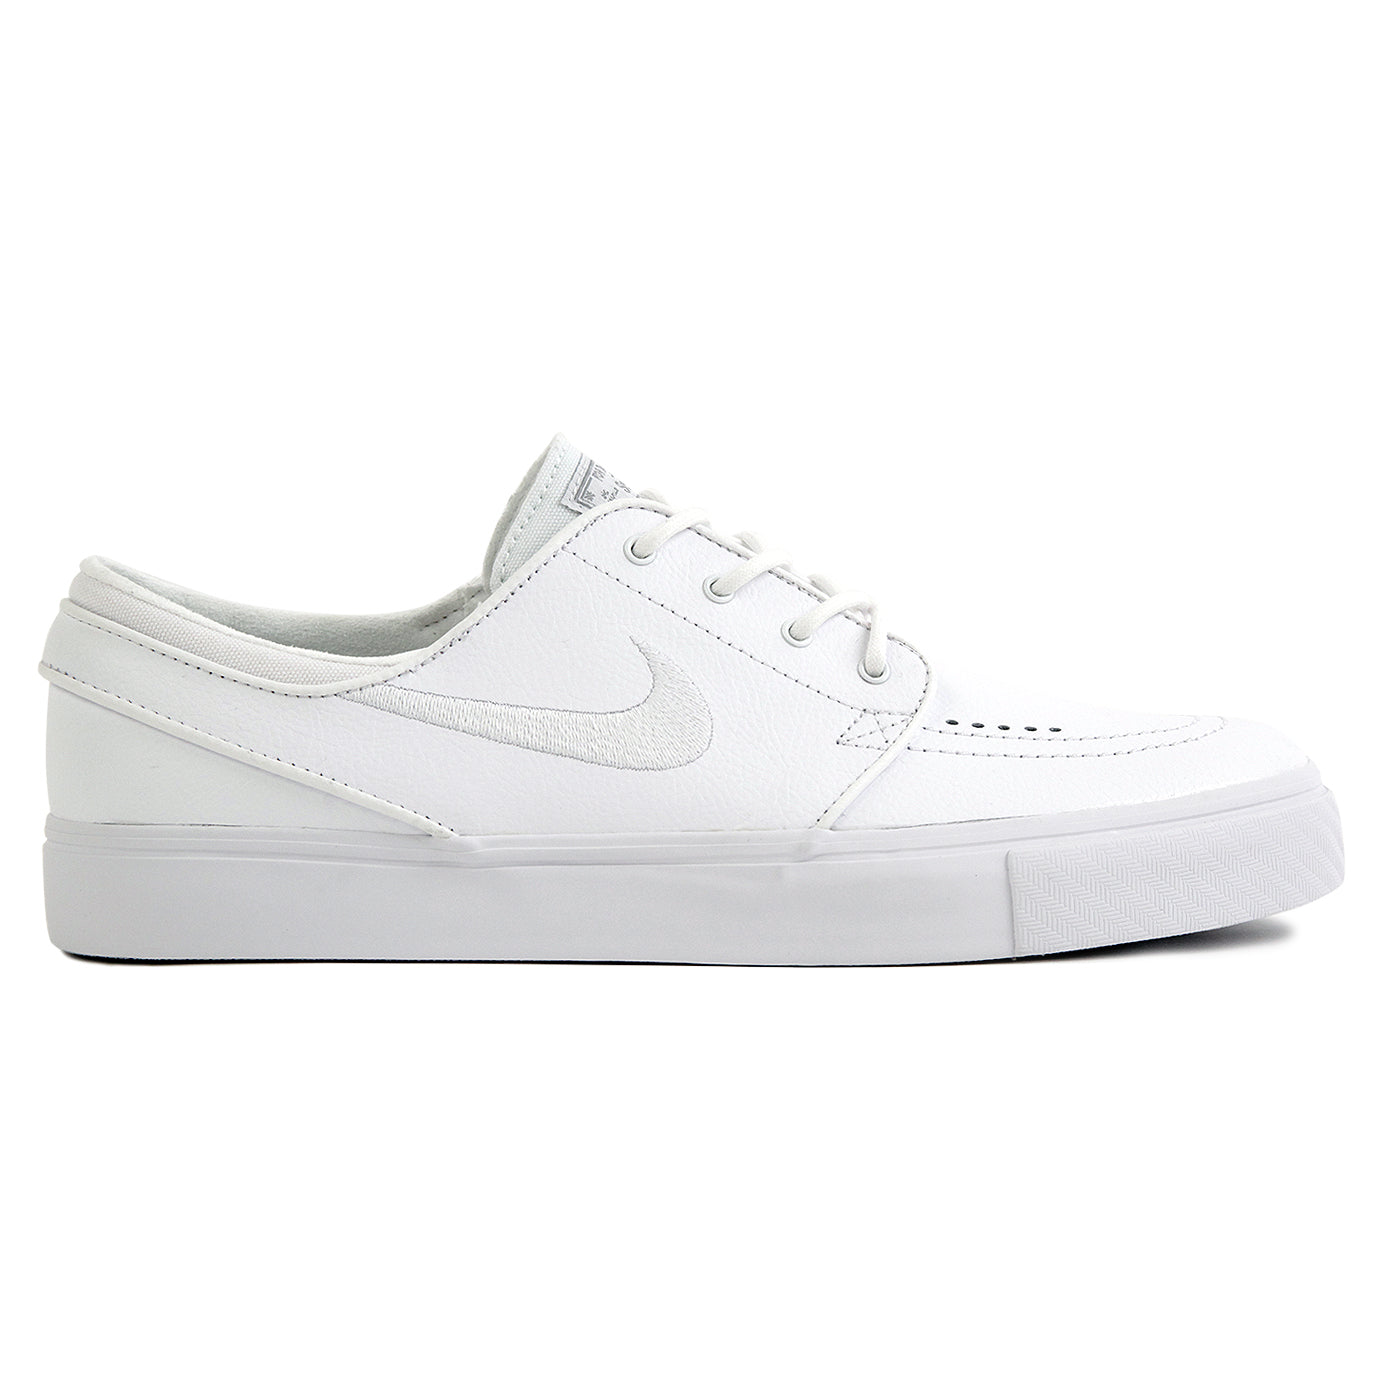 8c293bfaee50 Stefan Janoski Leather Shoes in White   White   Wolf Grey by Nike SB ...